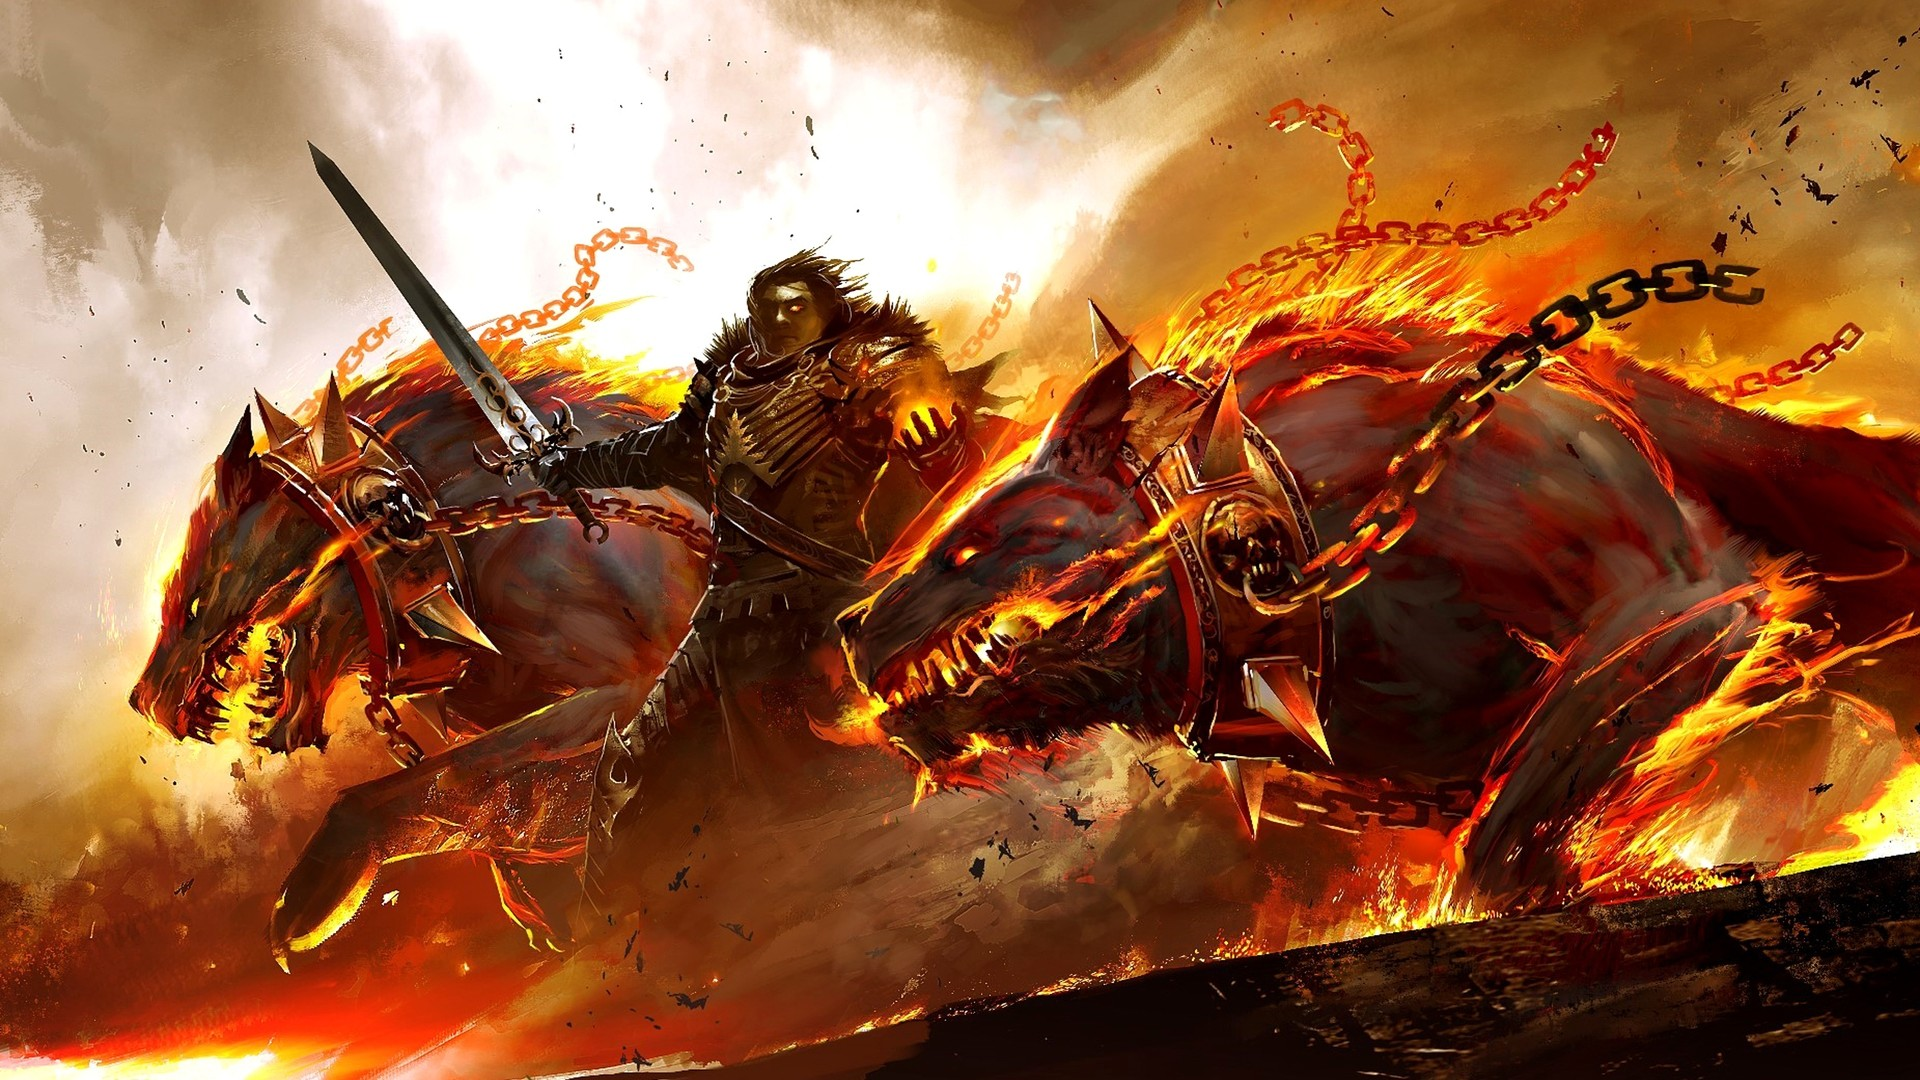 Beautiful Guild Wars Dogs Beasts Fire Chains Wallpaper Â« Kuff Games